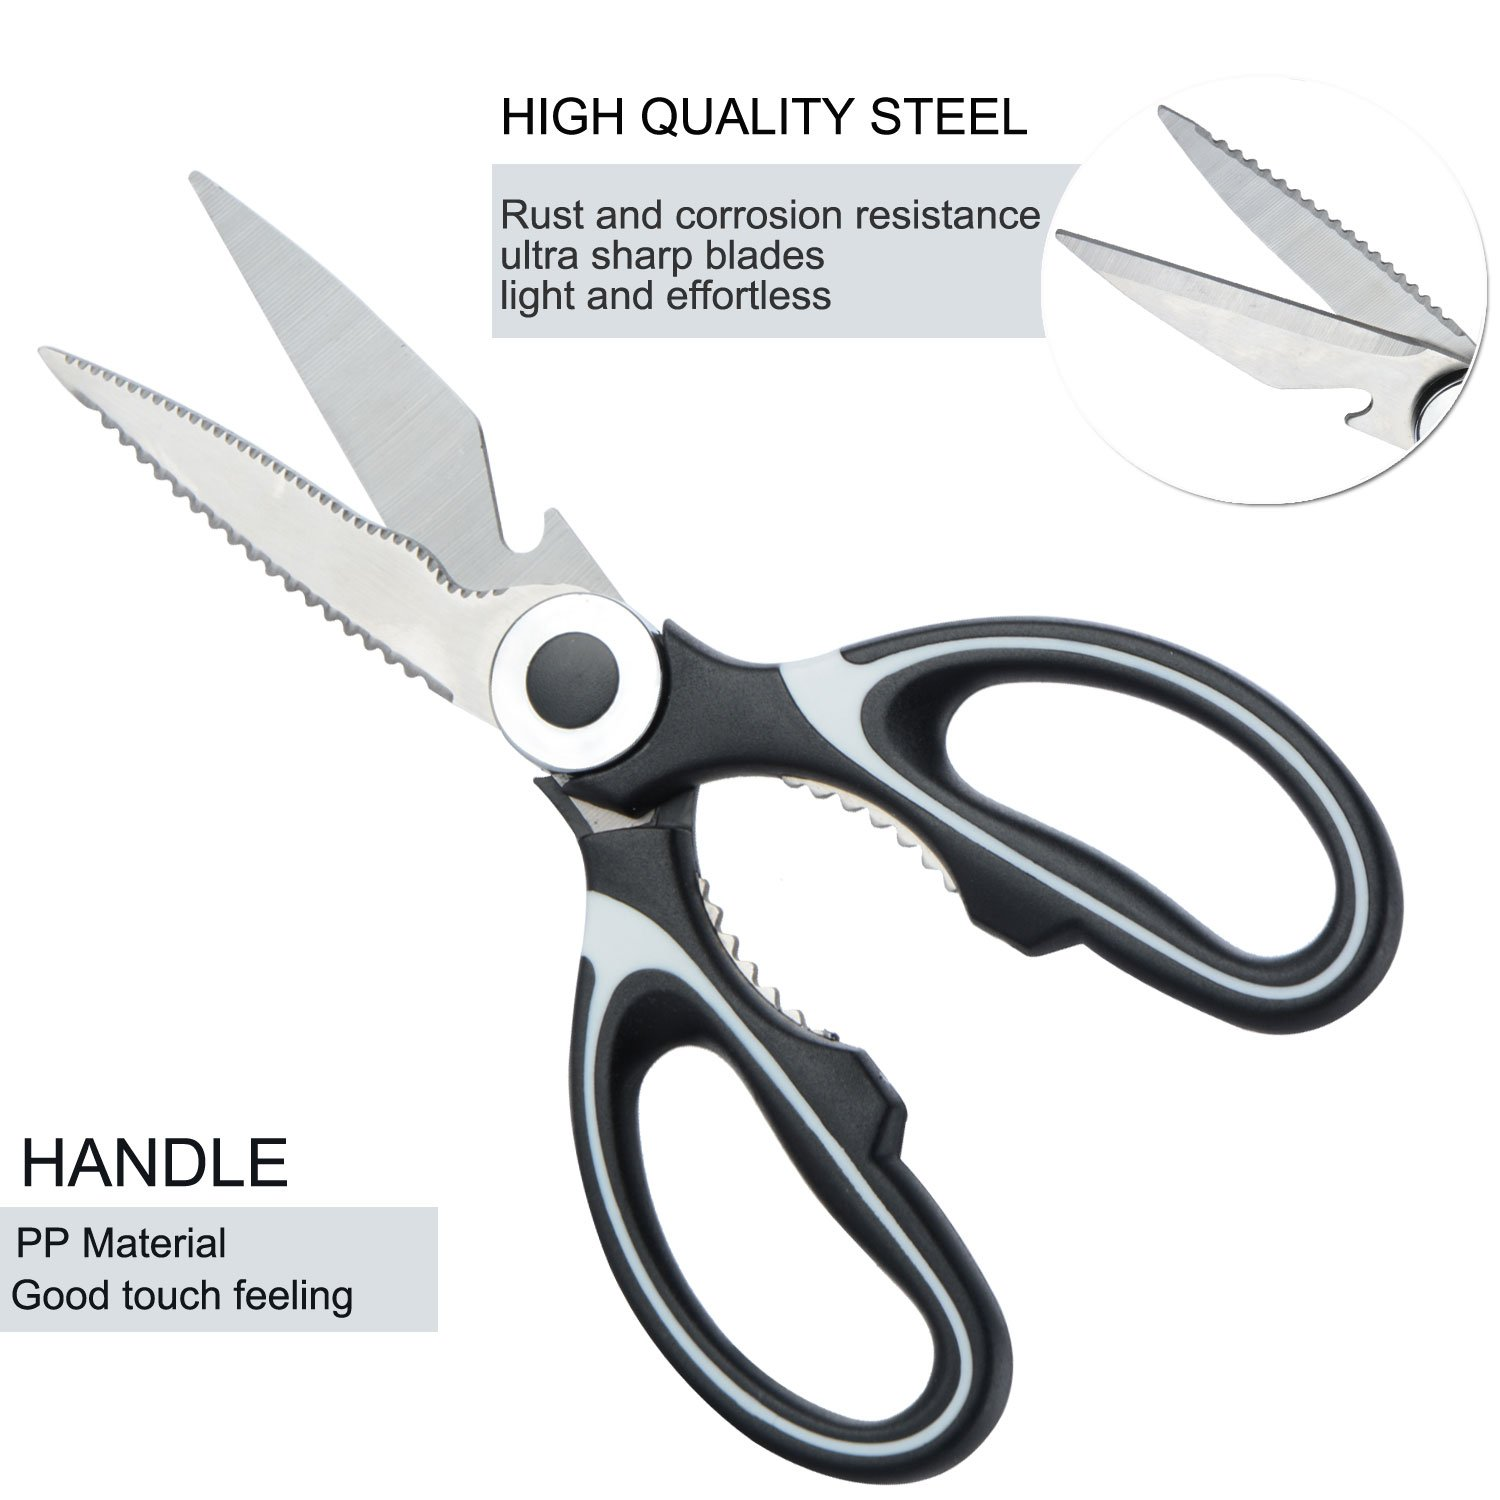 Doolland Kitchen Shears , Stainless Steel Multi-Function Kitchen Scissors with Blade Cover for Chicken, Poultry, Fish, Meat, Vegetables, Herbs, BBQ